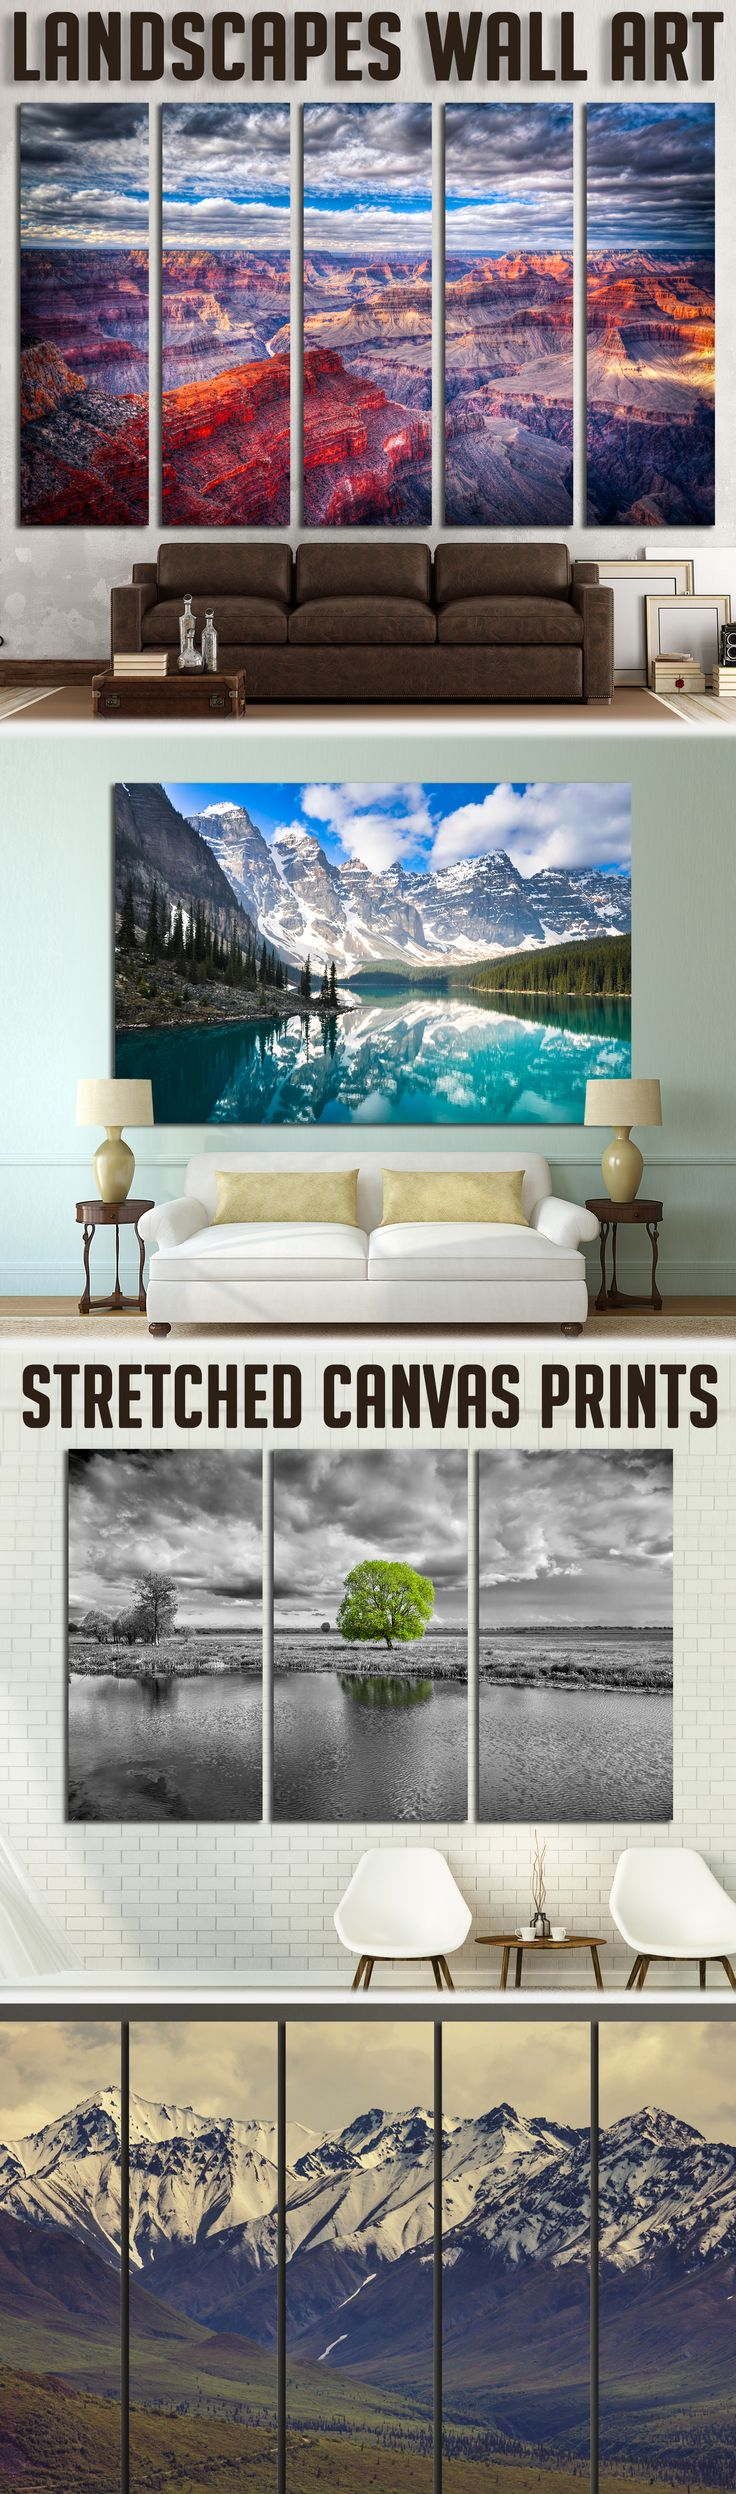 Scenic Landscape Wall Art for Home & Office decoration.